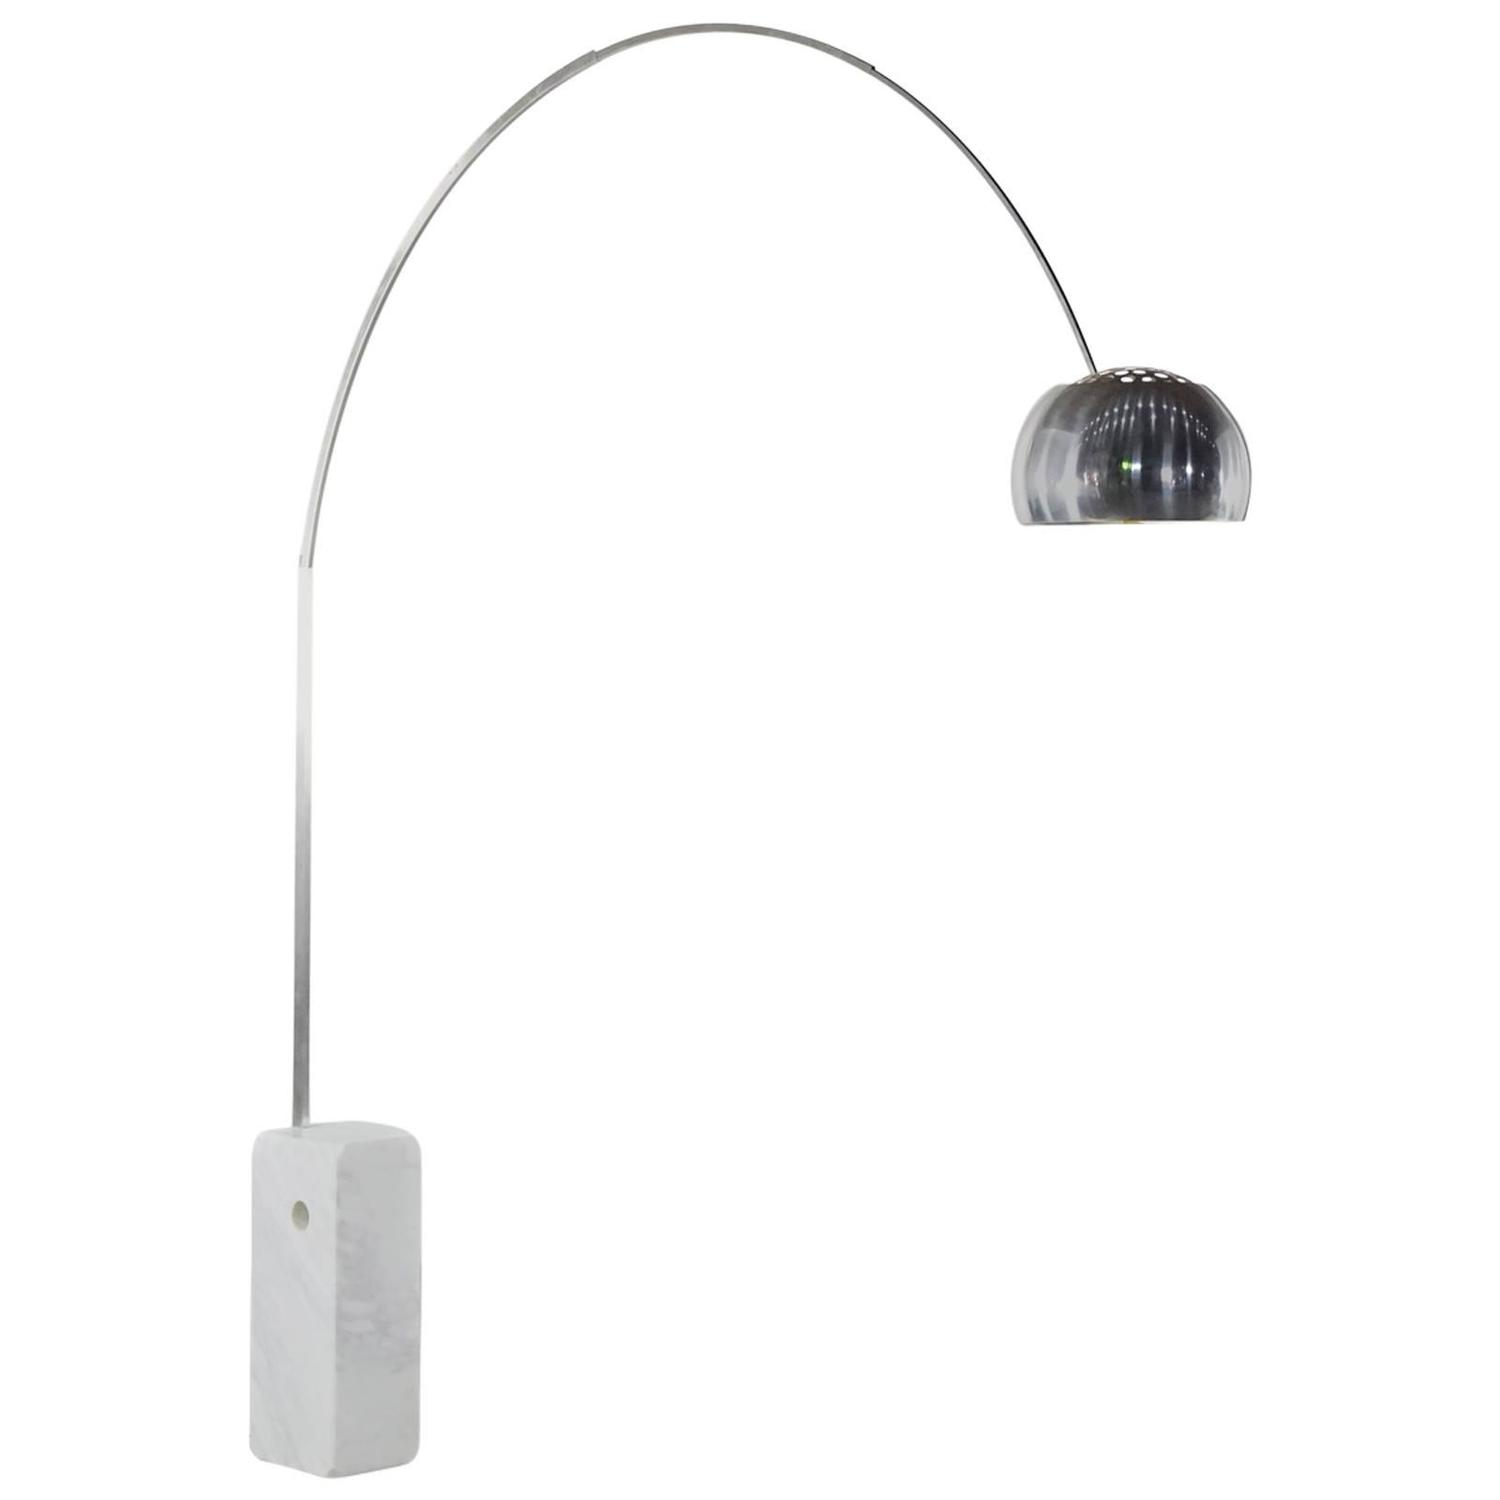 Arco flos floor lamp by achille and pier giacomo for Flos castiglioni arco